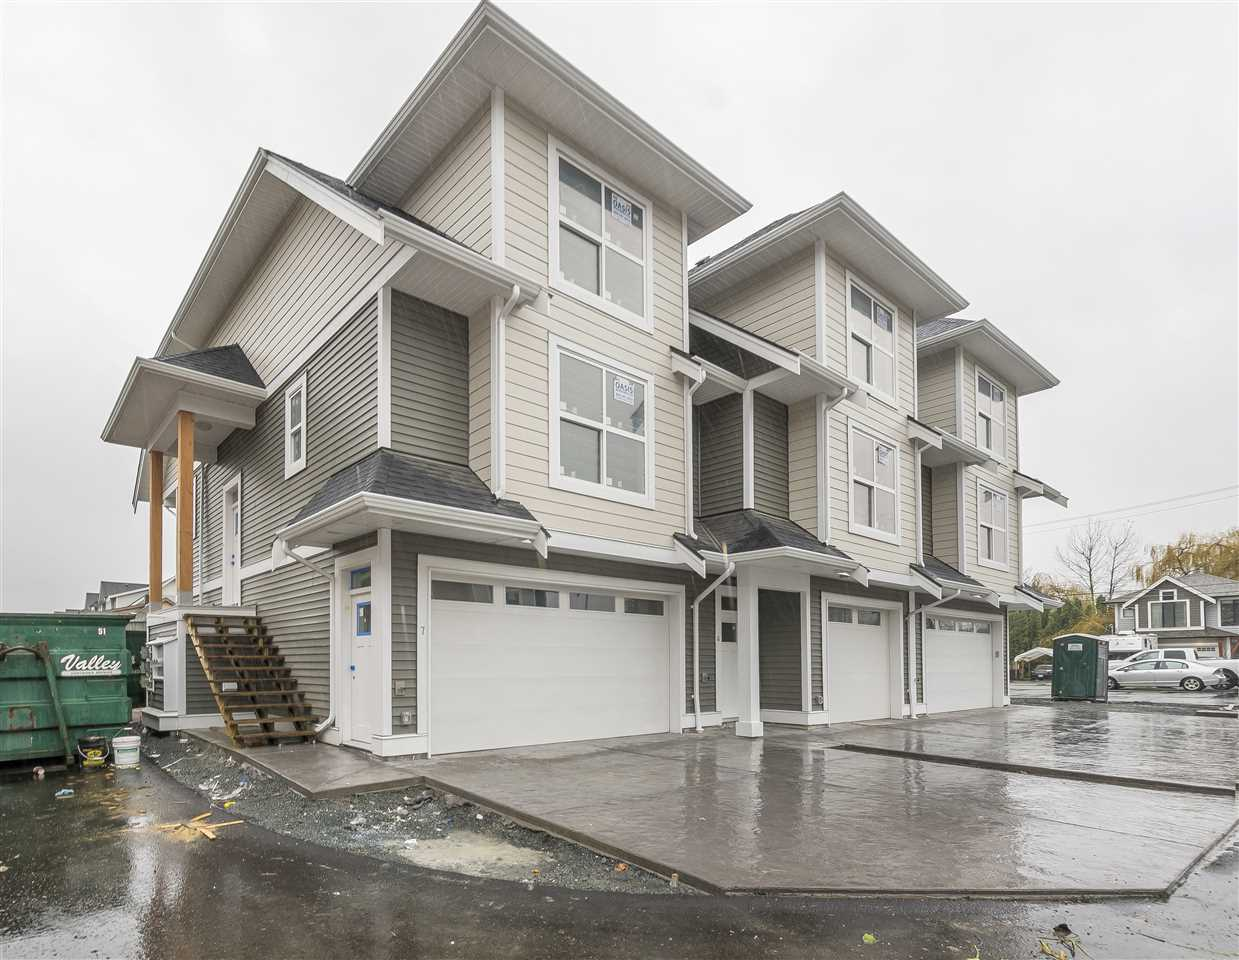 One of the nicest townhome complexes on the market today! Brand new construction; 11 units in total. All c/w high end finishing, full Stainless Steel appliance package and Modern color choices. Hardy plank siding, 9' ceilings on first and main floors, Community garden and Childrens park private in complex. West side of Chilliwack, located near Prospera centre, Hospital, Leisure centre, Arts Centre, Skate park, and Shopping. Options for Built in vac, Central air conditioning, and Barbeque box. Estimated completion September 2017!